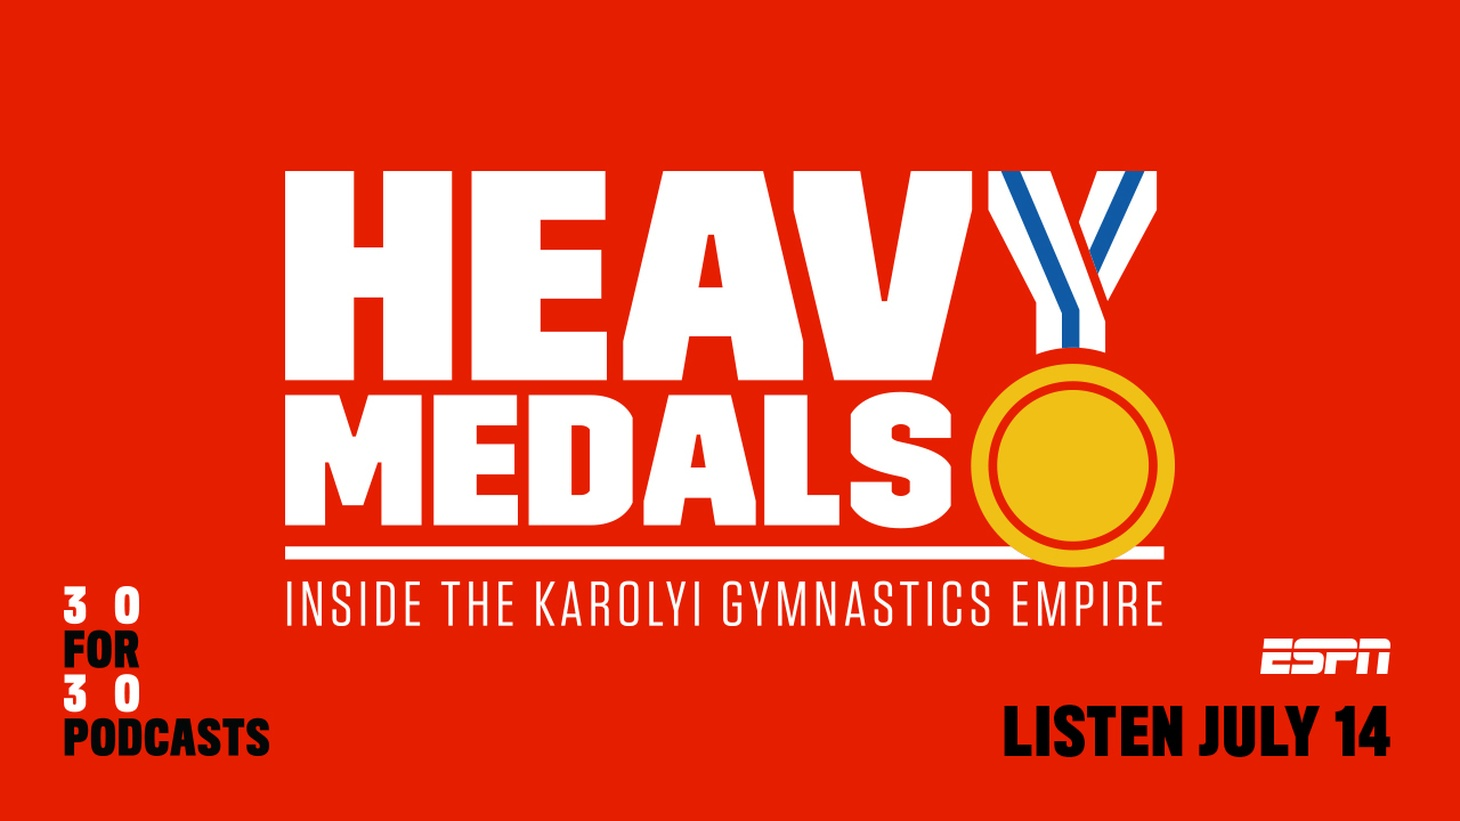 """Béla and Márta Károlyi built a gymnastics empire, but it collapsed when Larry Nassar sexually abused hundreds of gymnasts. That's the focus of the new ESPN podcast called """" Heavy Medals ."""""""